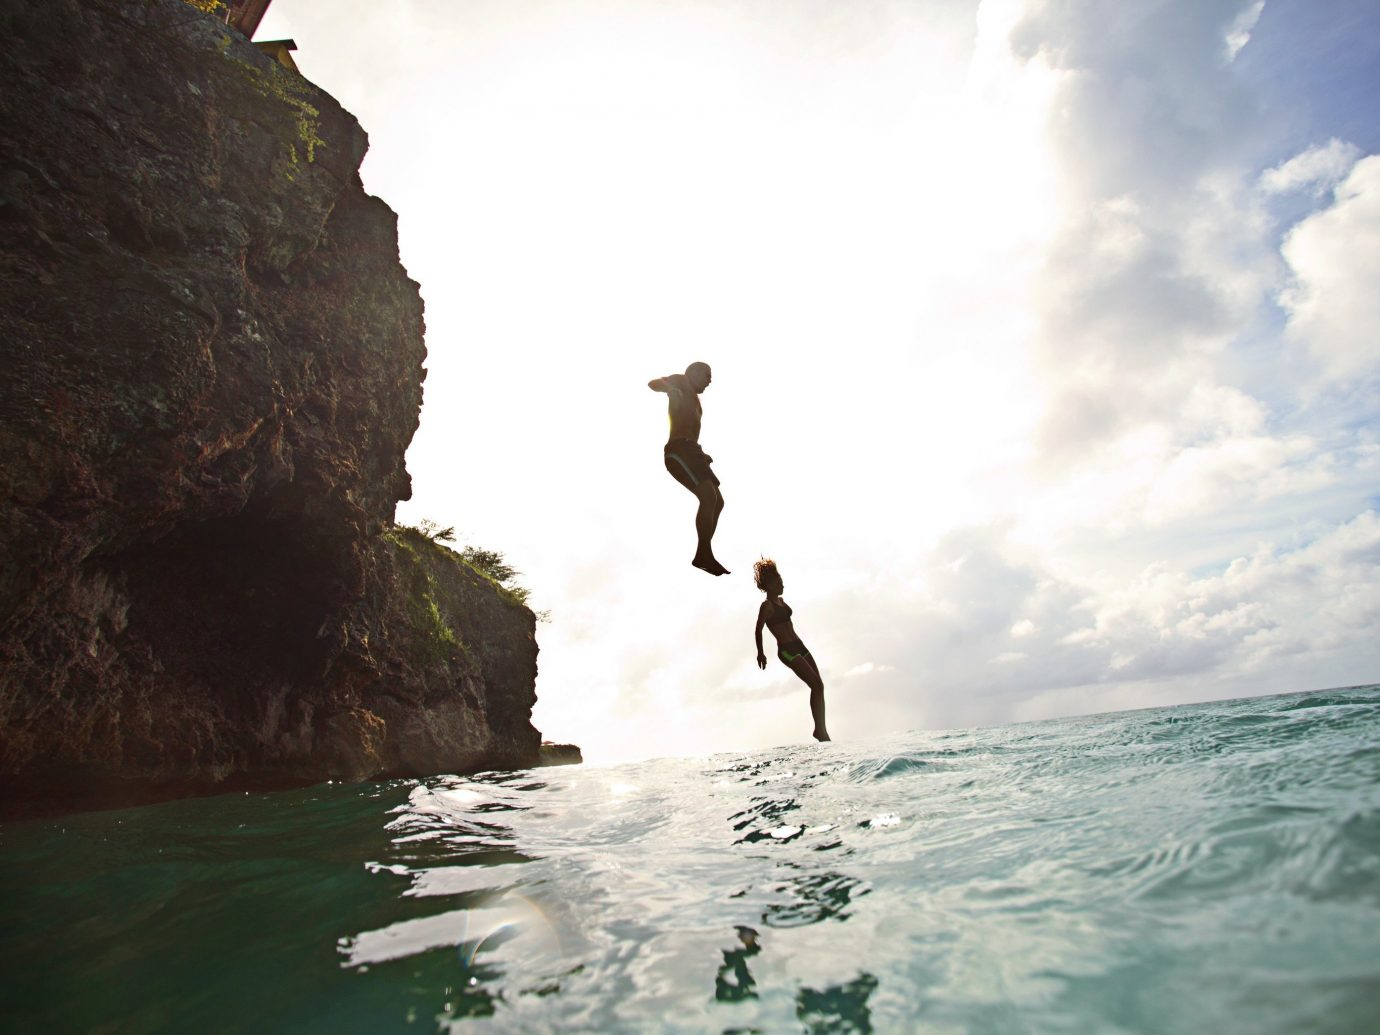 Beaches caribbean outdoor sky water Sea cliff Nature coastal and oceanic landforms wave Ocean mountain terrain water sport Coast vacation extreme sport rock jumping fun tourism wind wave hillside